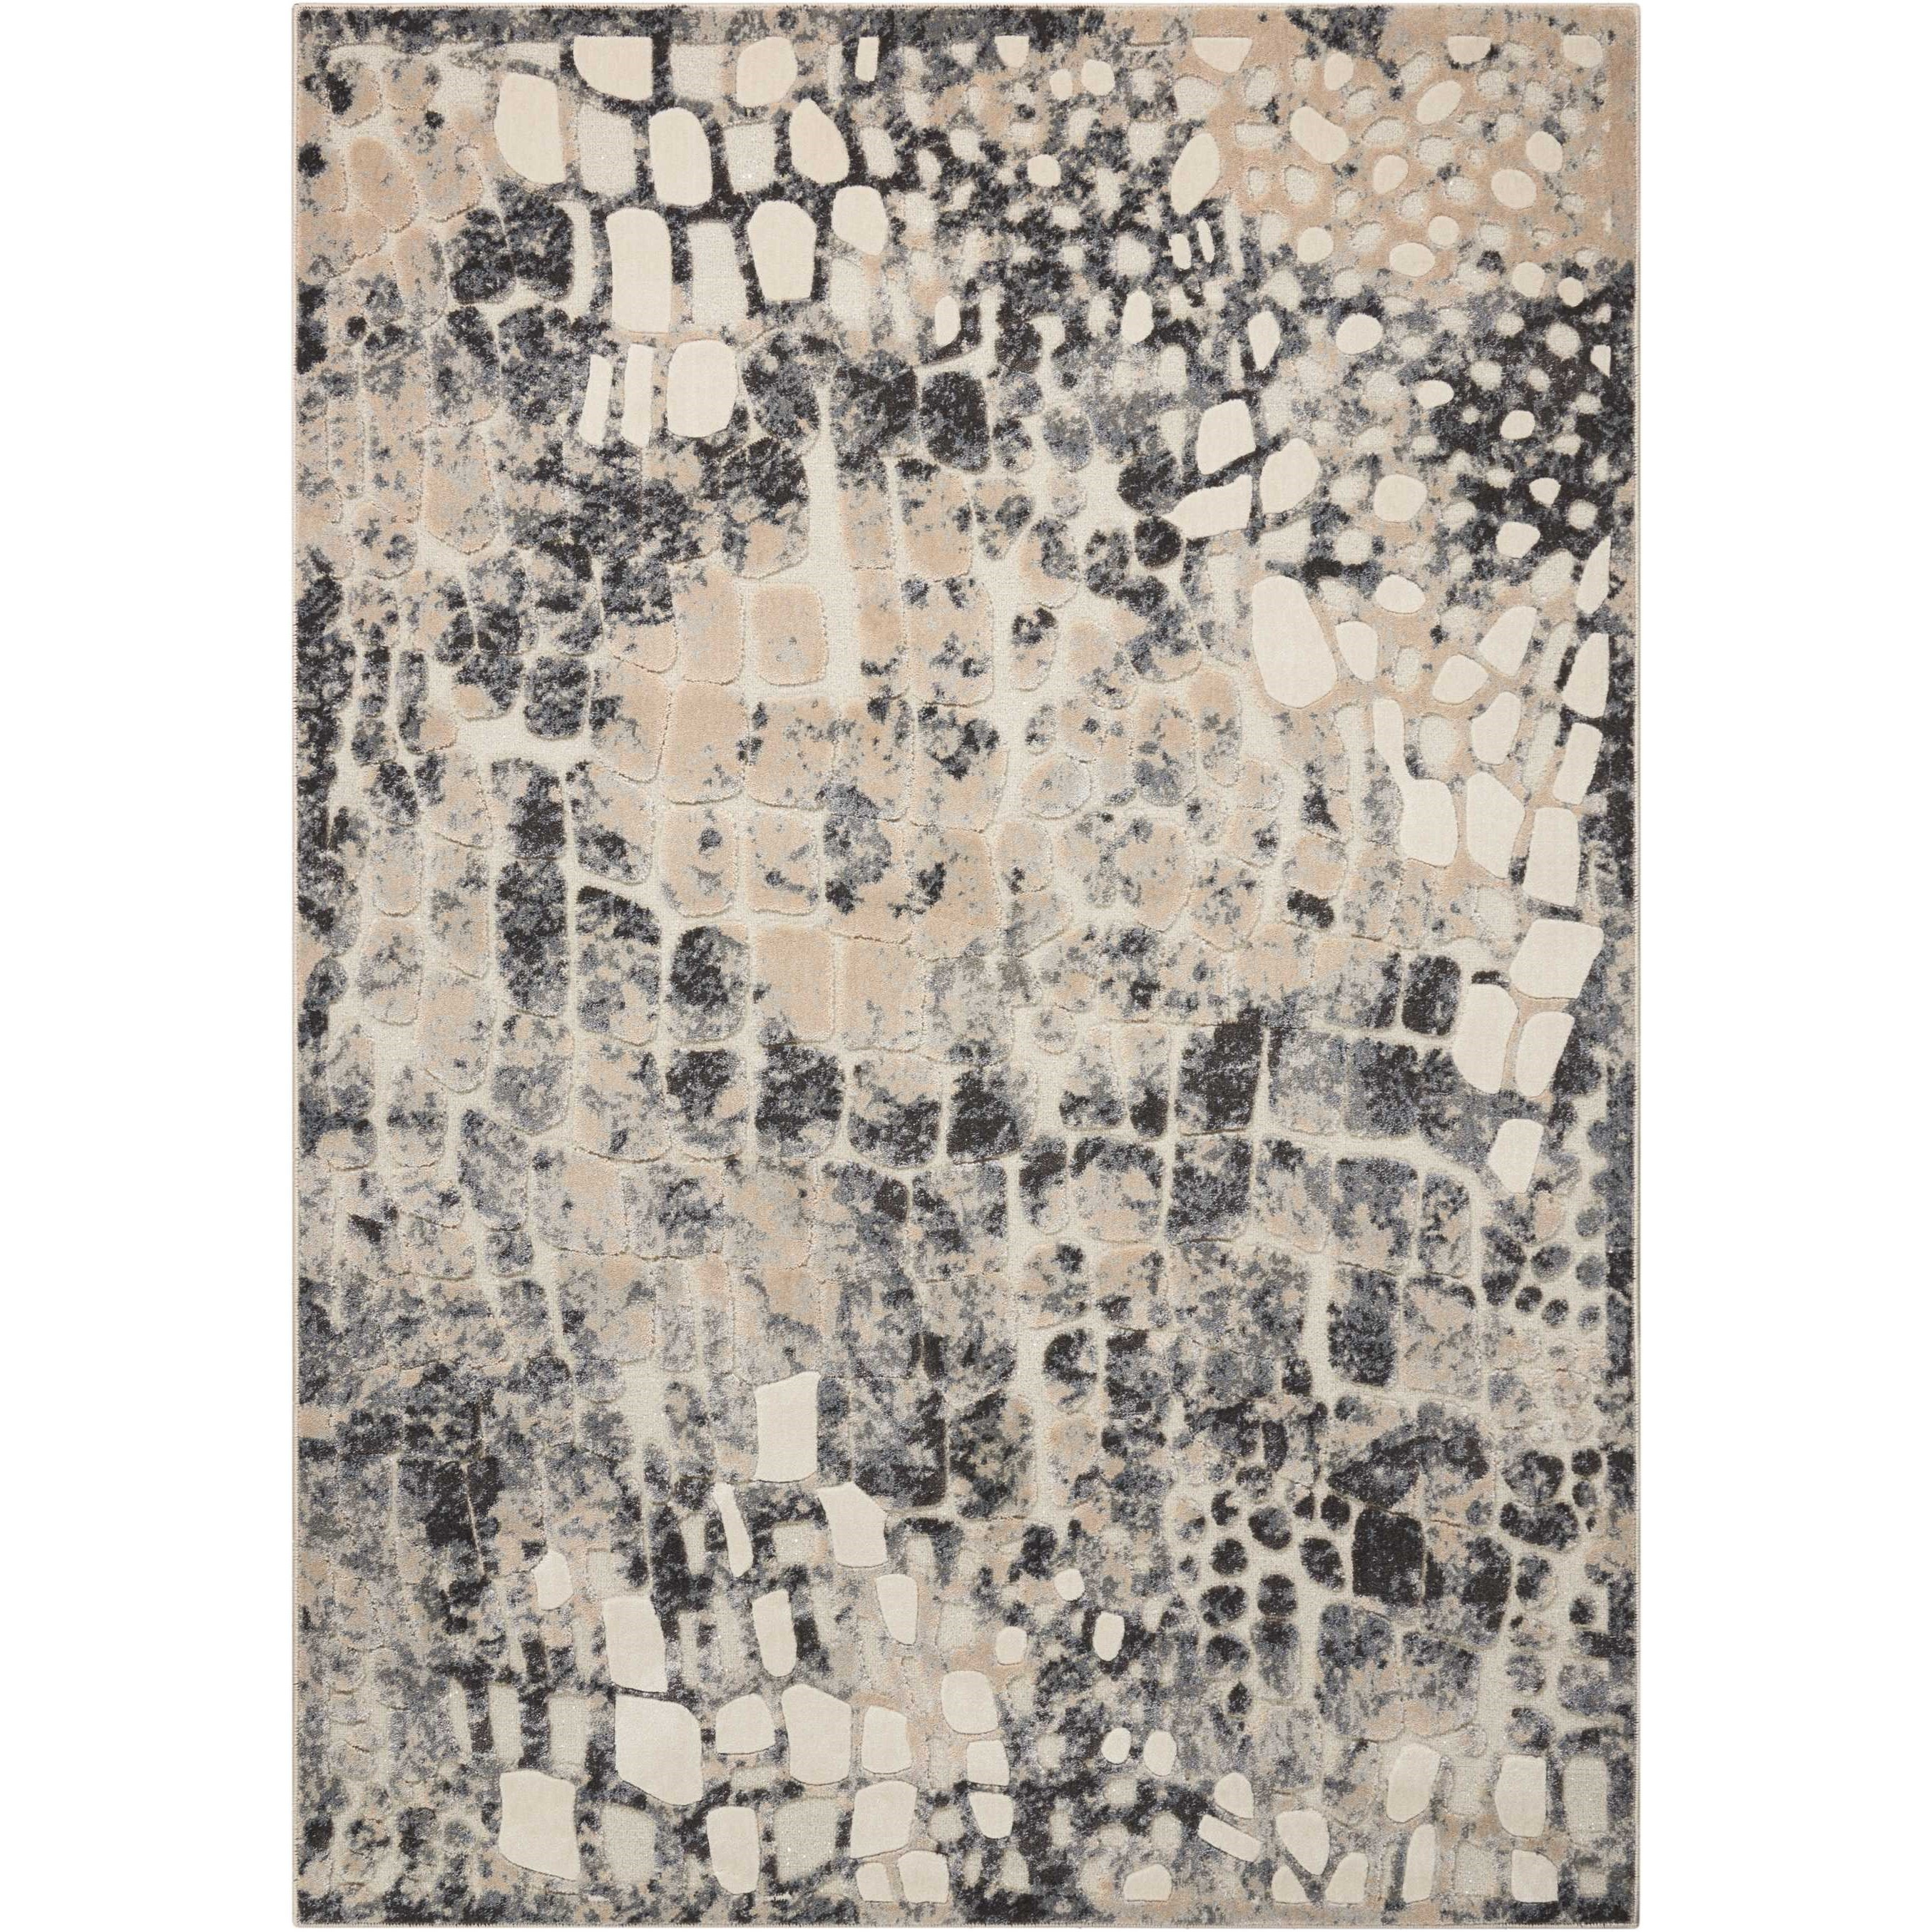 "Gleam 9'3"" x 12'9"" Rug by Michael Amini by Nourison at Home Collections Furniture"